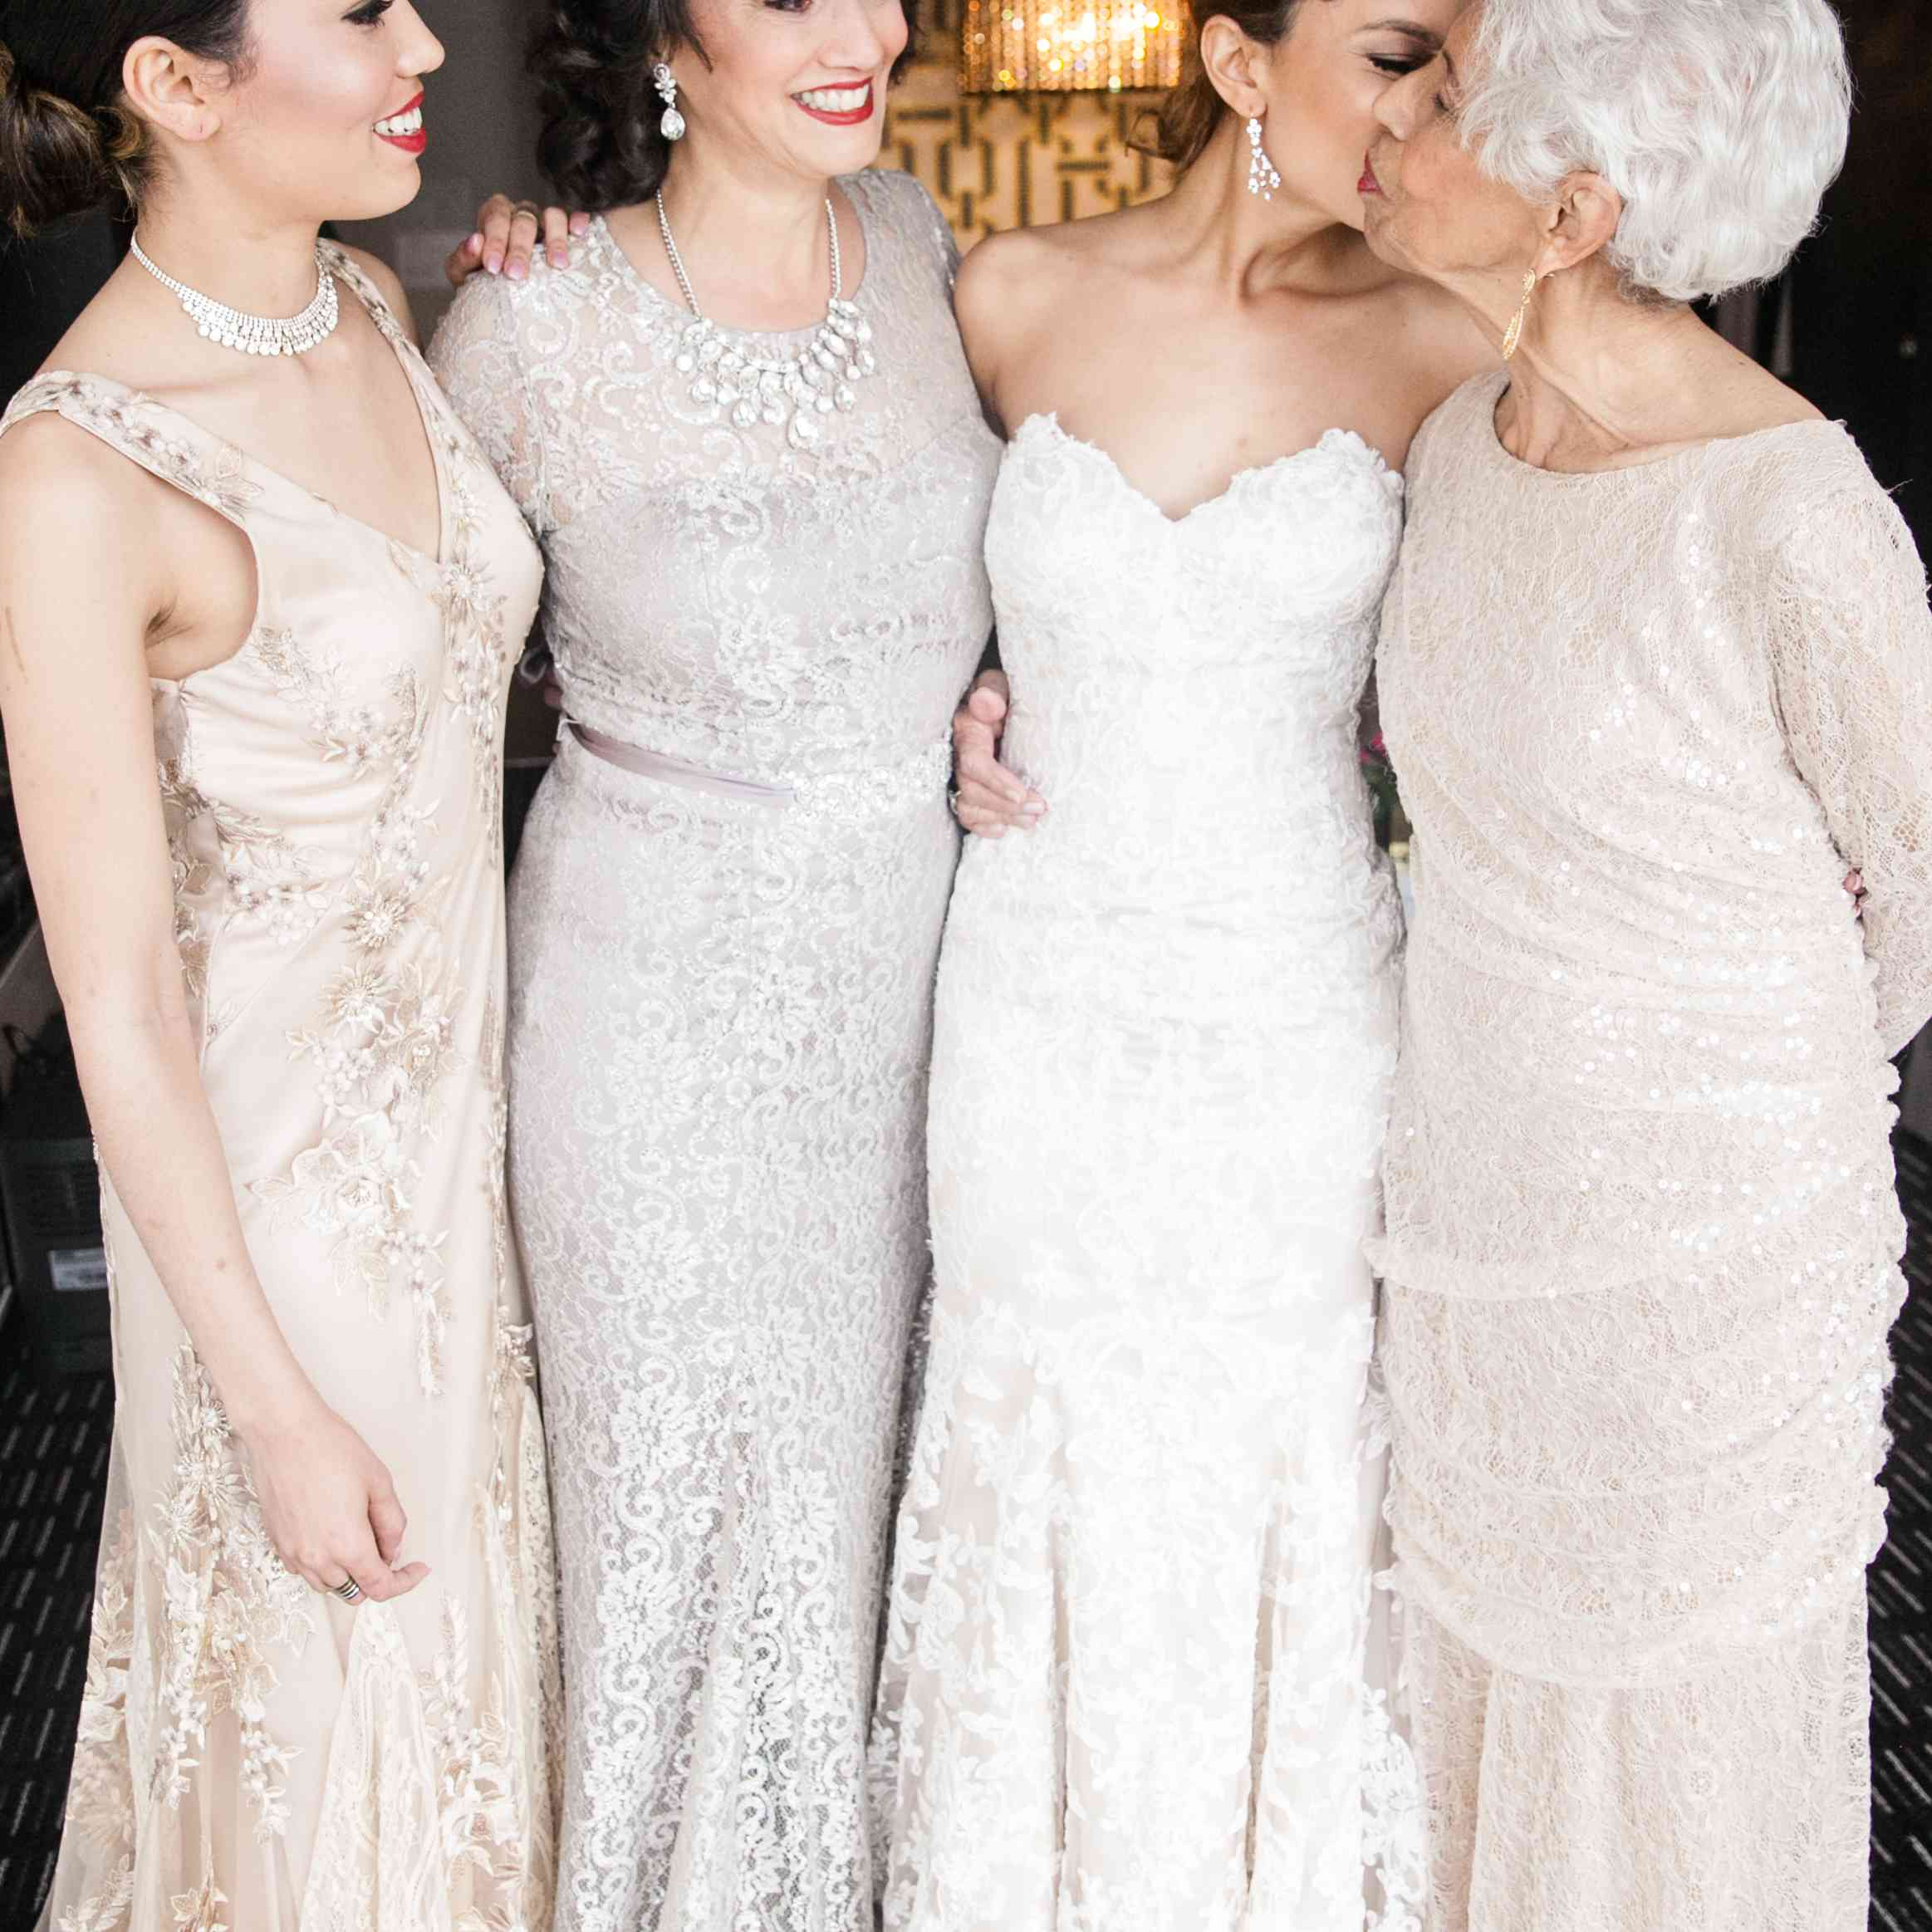 <p>Bride with Women Family Members</p><br><br>